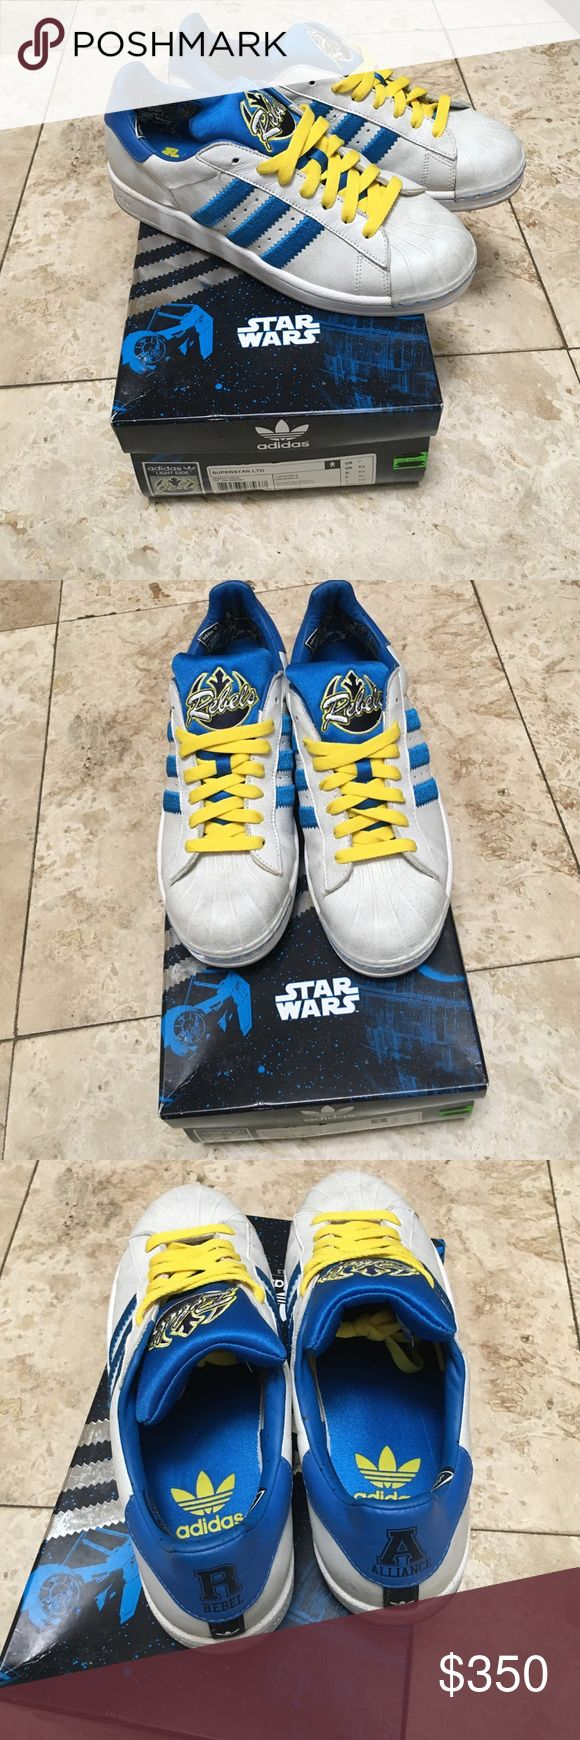 """Mens Star Wars Adidas Superstar Limited Edition Adidas Superstar Star Wars """"Rebels"""" Sneakers. NWT & box. Collectors item! Limited Edition. Adidas Shoes Sneakers"""